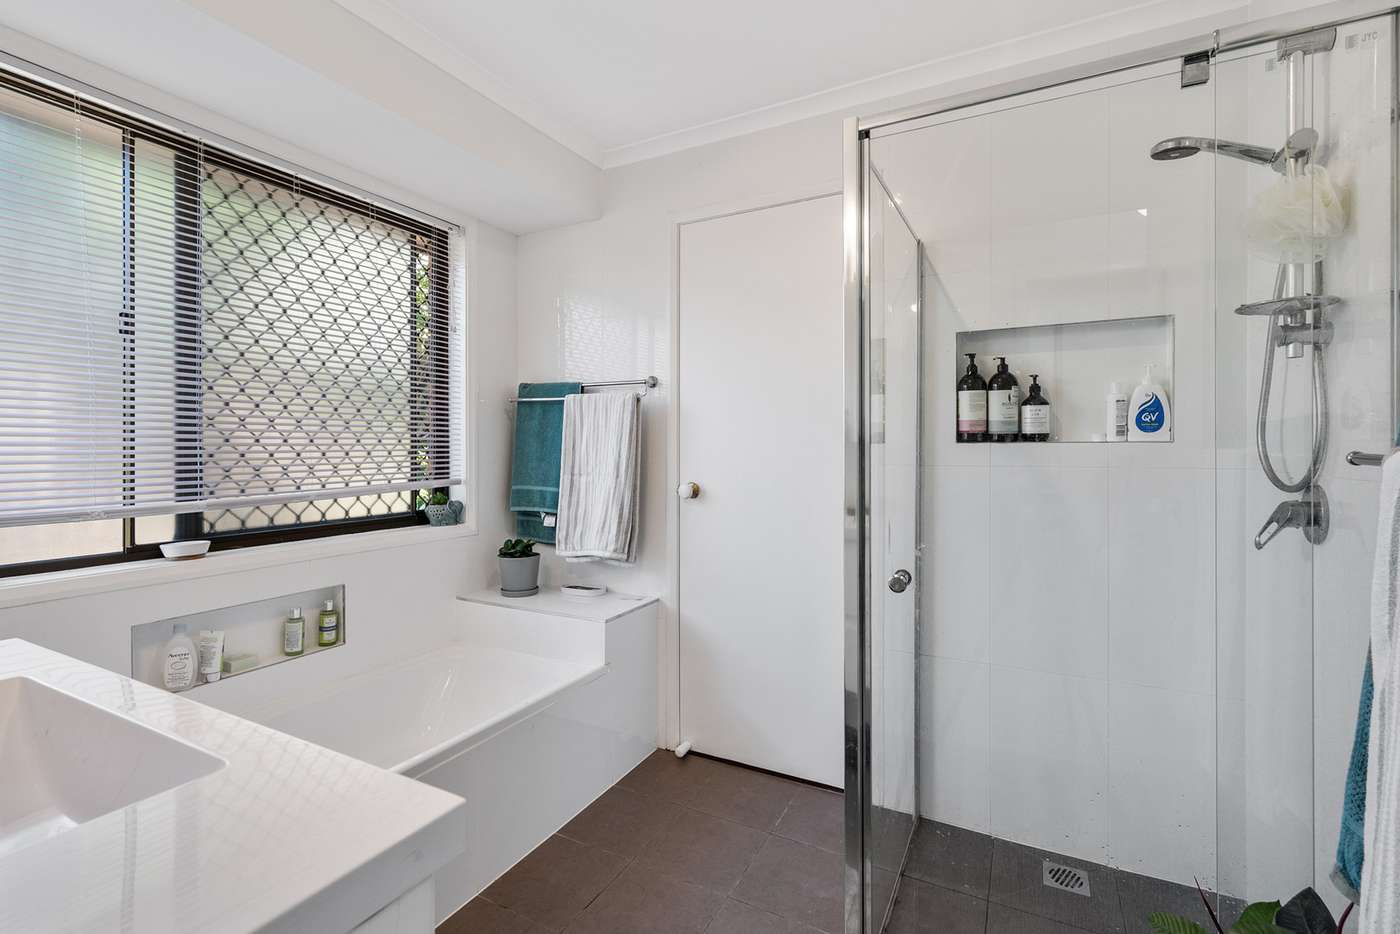 Fifth view of Homely house listing, 24 Carbon Court, Bethania QLD 4205